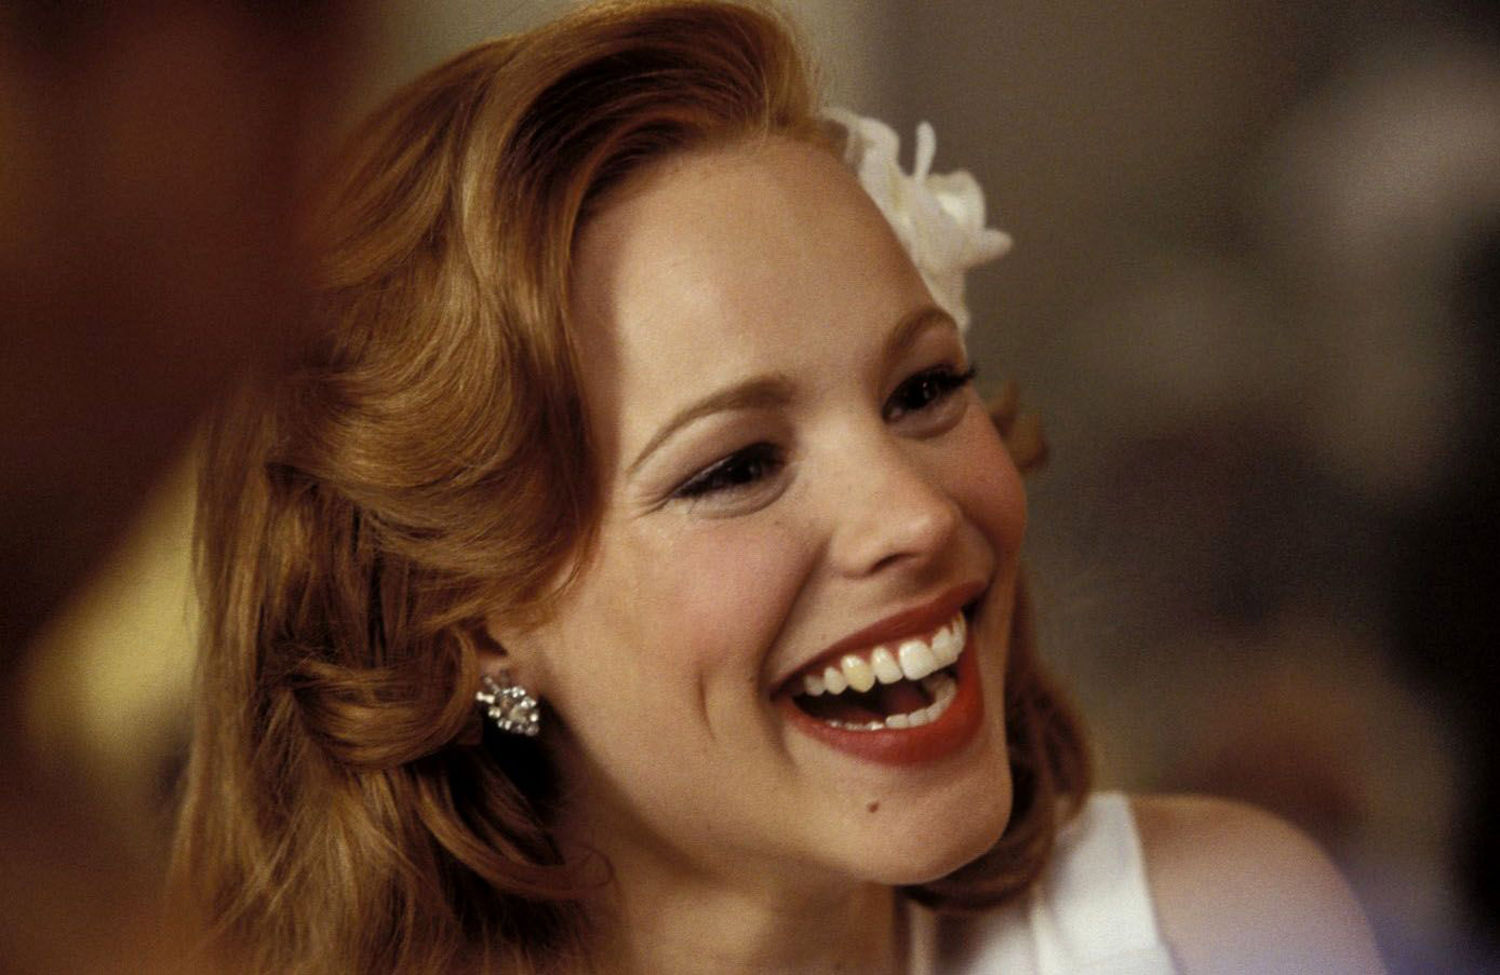 Rachel mcadams cute face stills